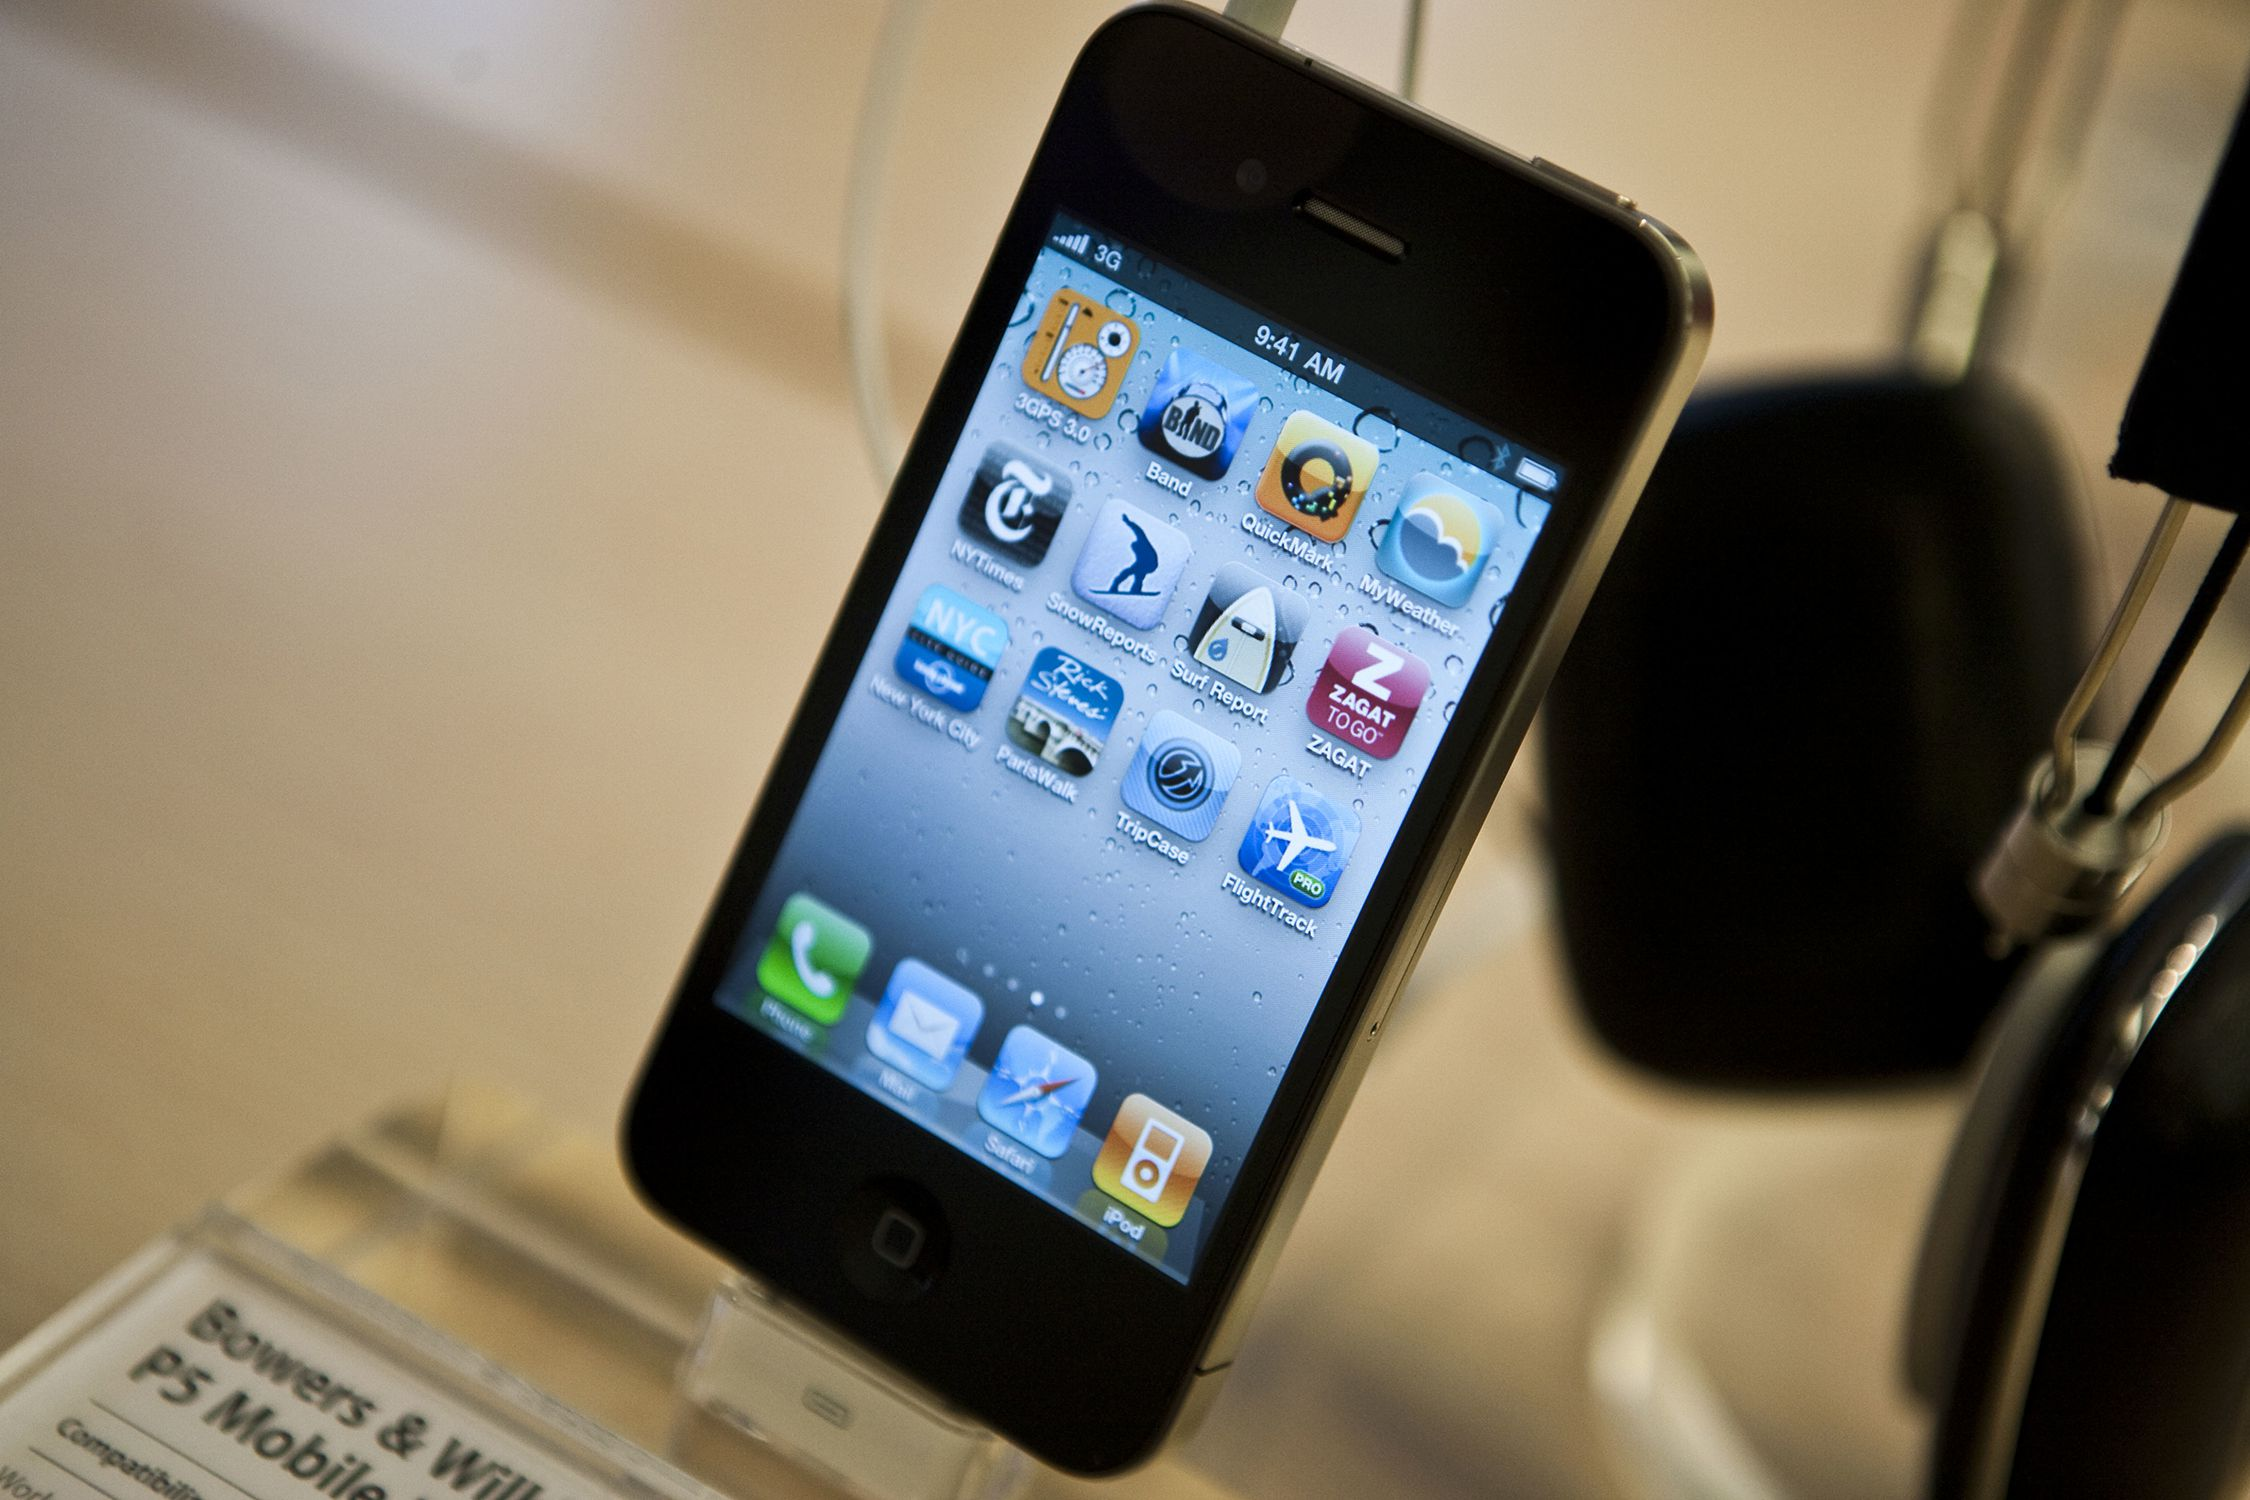 iphone 4 antenna problems explained and fixed. Black Bedroom Furniture Sets. Home Design Ideas